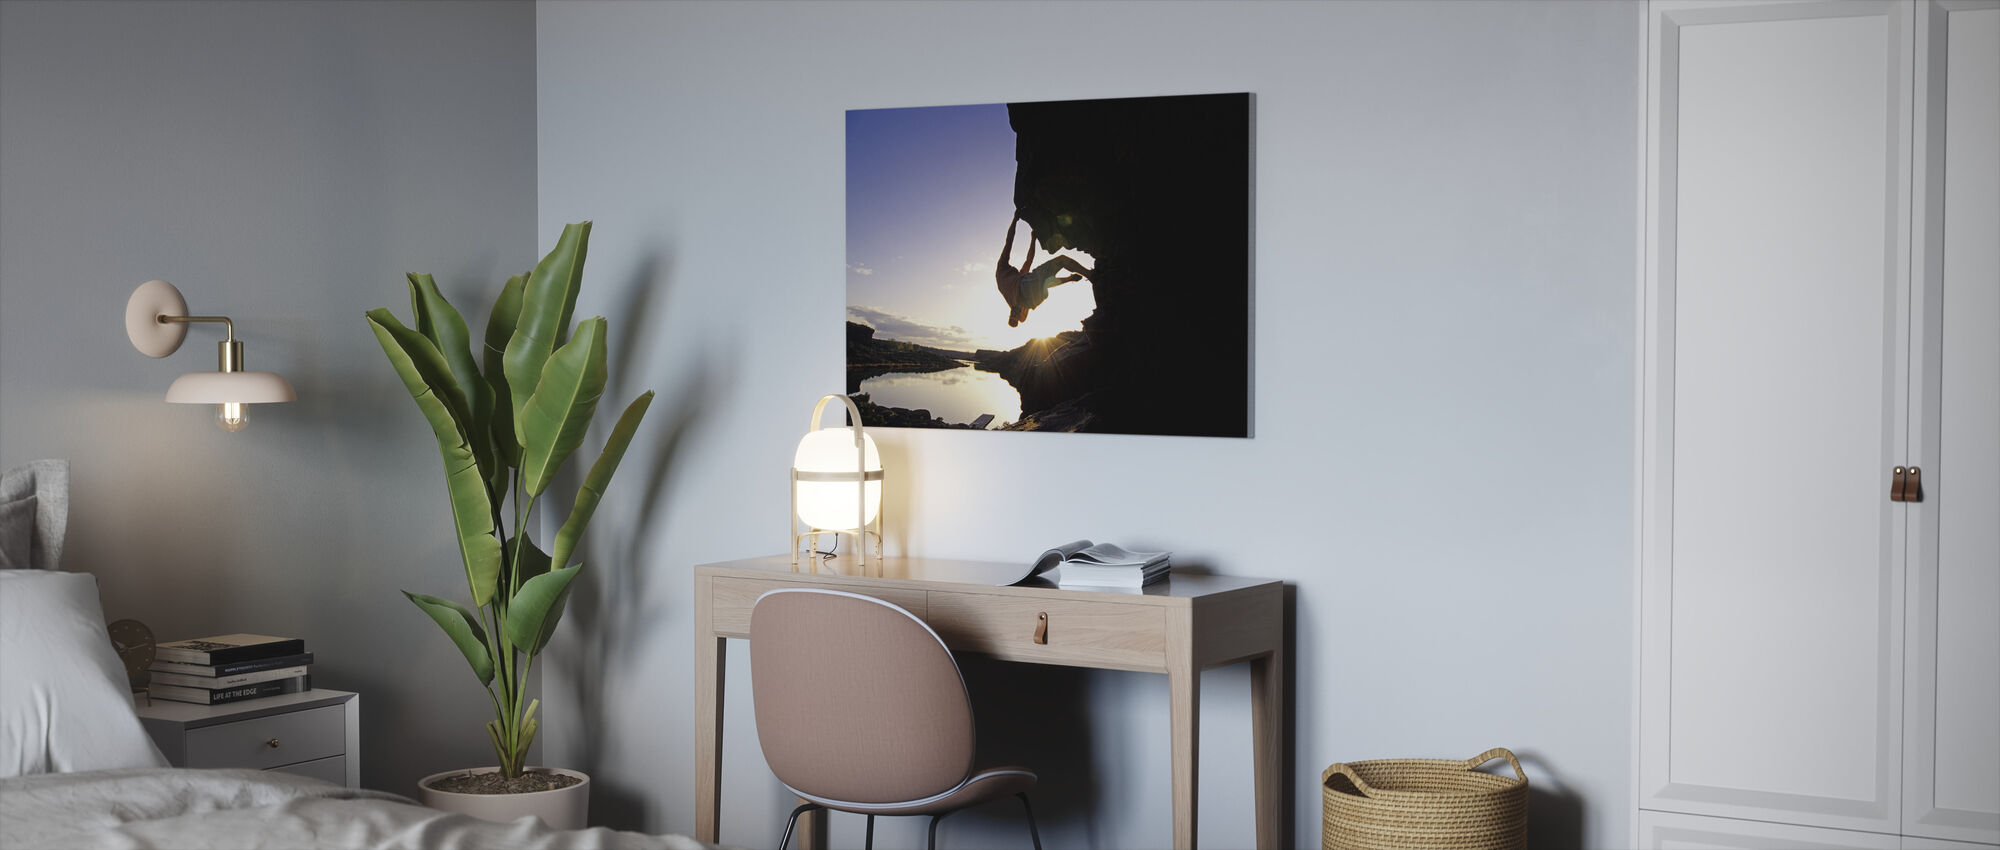 Bouldering in Twin Falls - Canvas print - Office